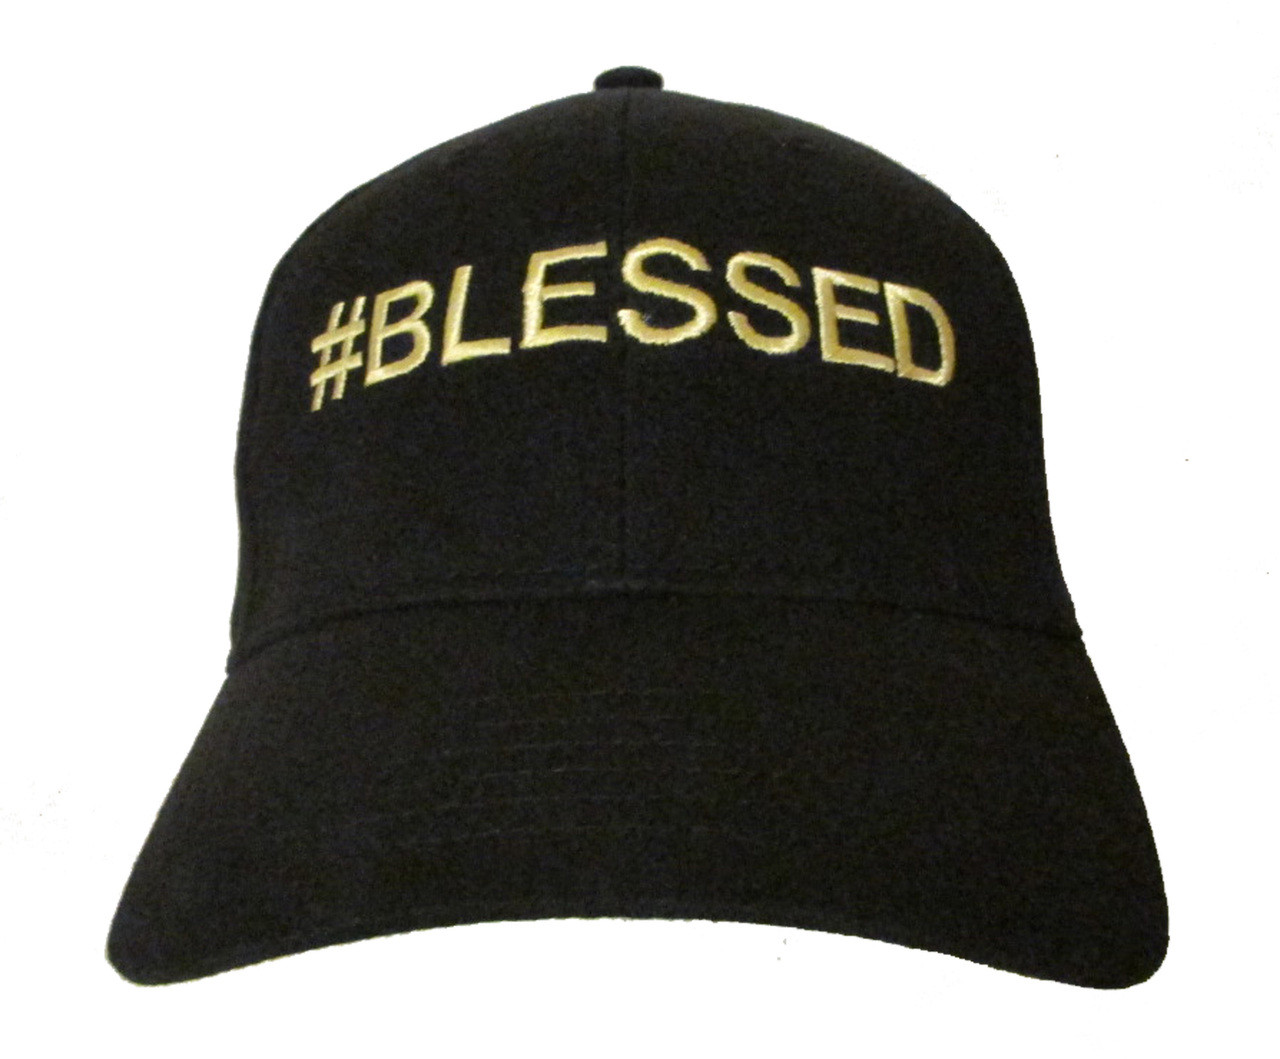 7e72601ccd9ca Bruno Mars 24K Magic Song   BLESSED Embroidered Baseball Hat ...